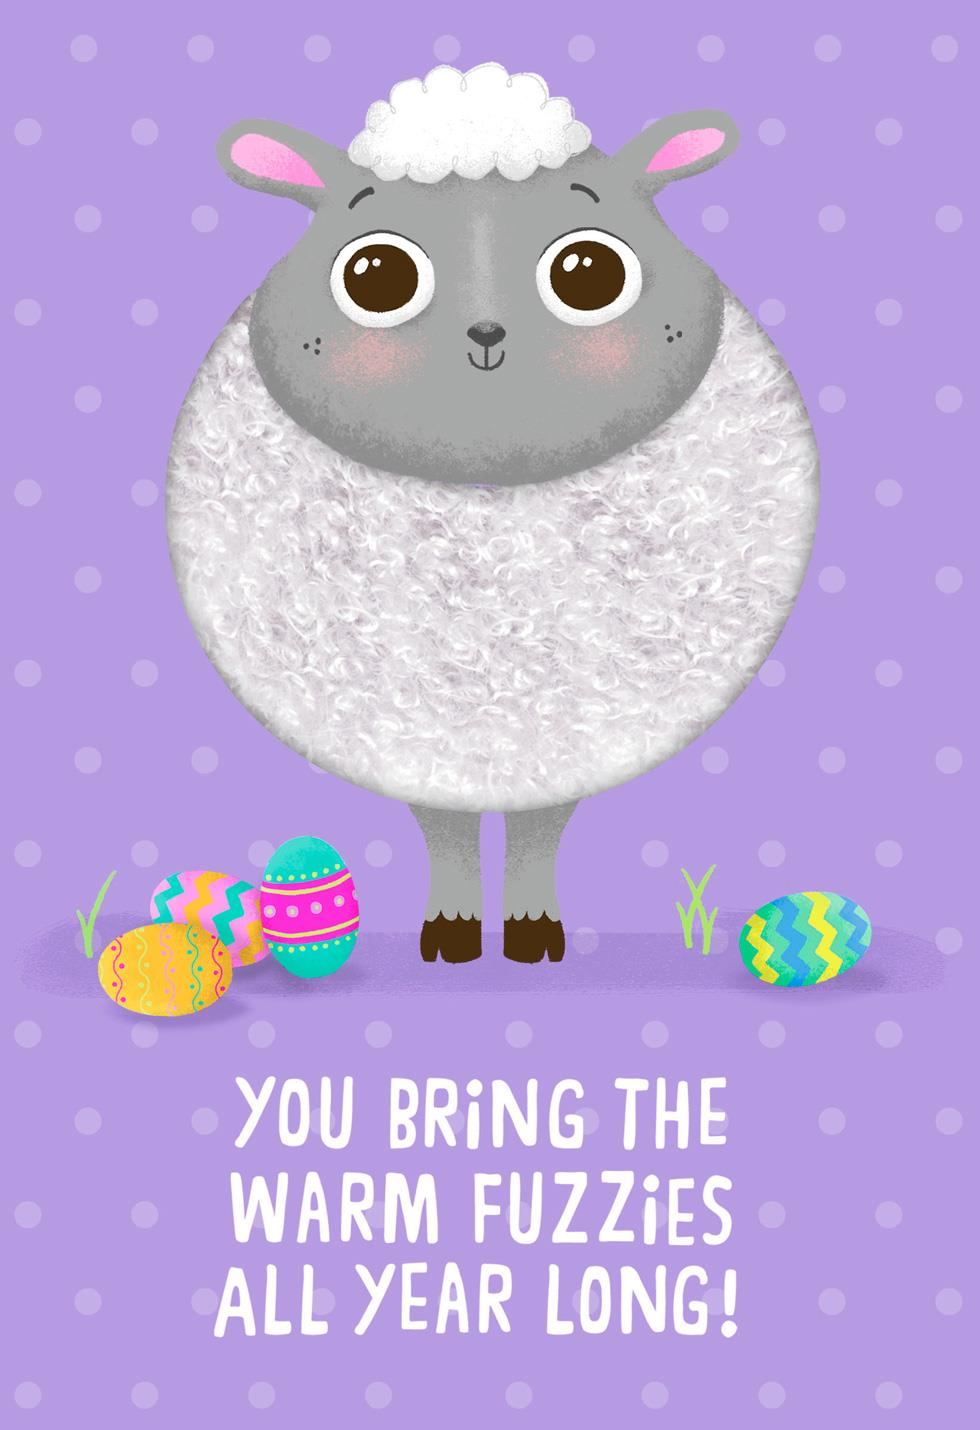 Fuzzy Lamb Warm Fuzzies Easter Card For Kids Greeting